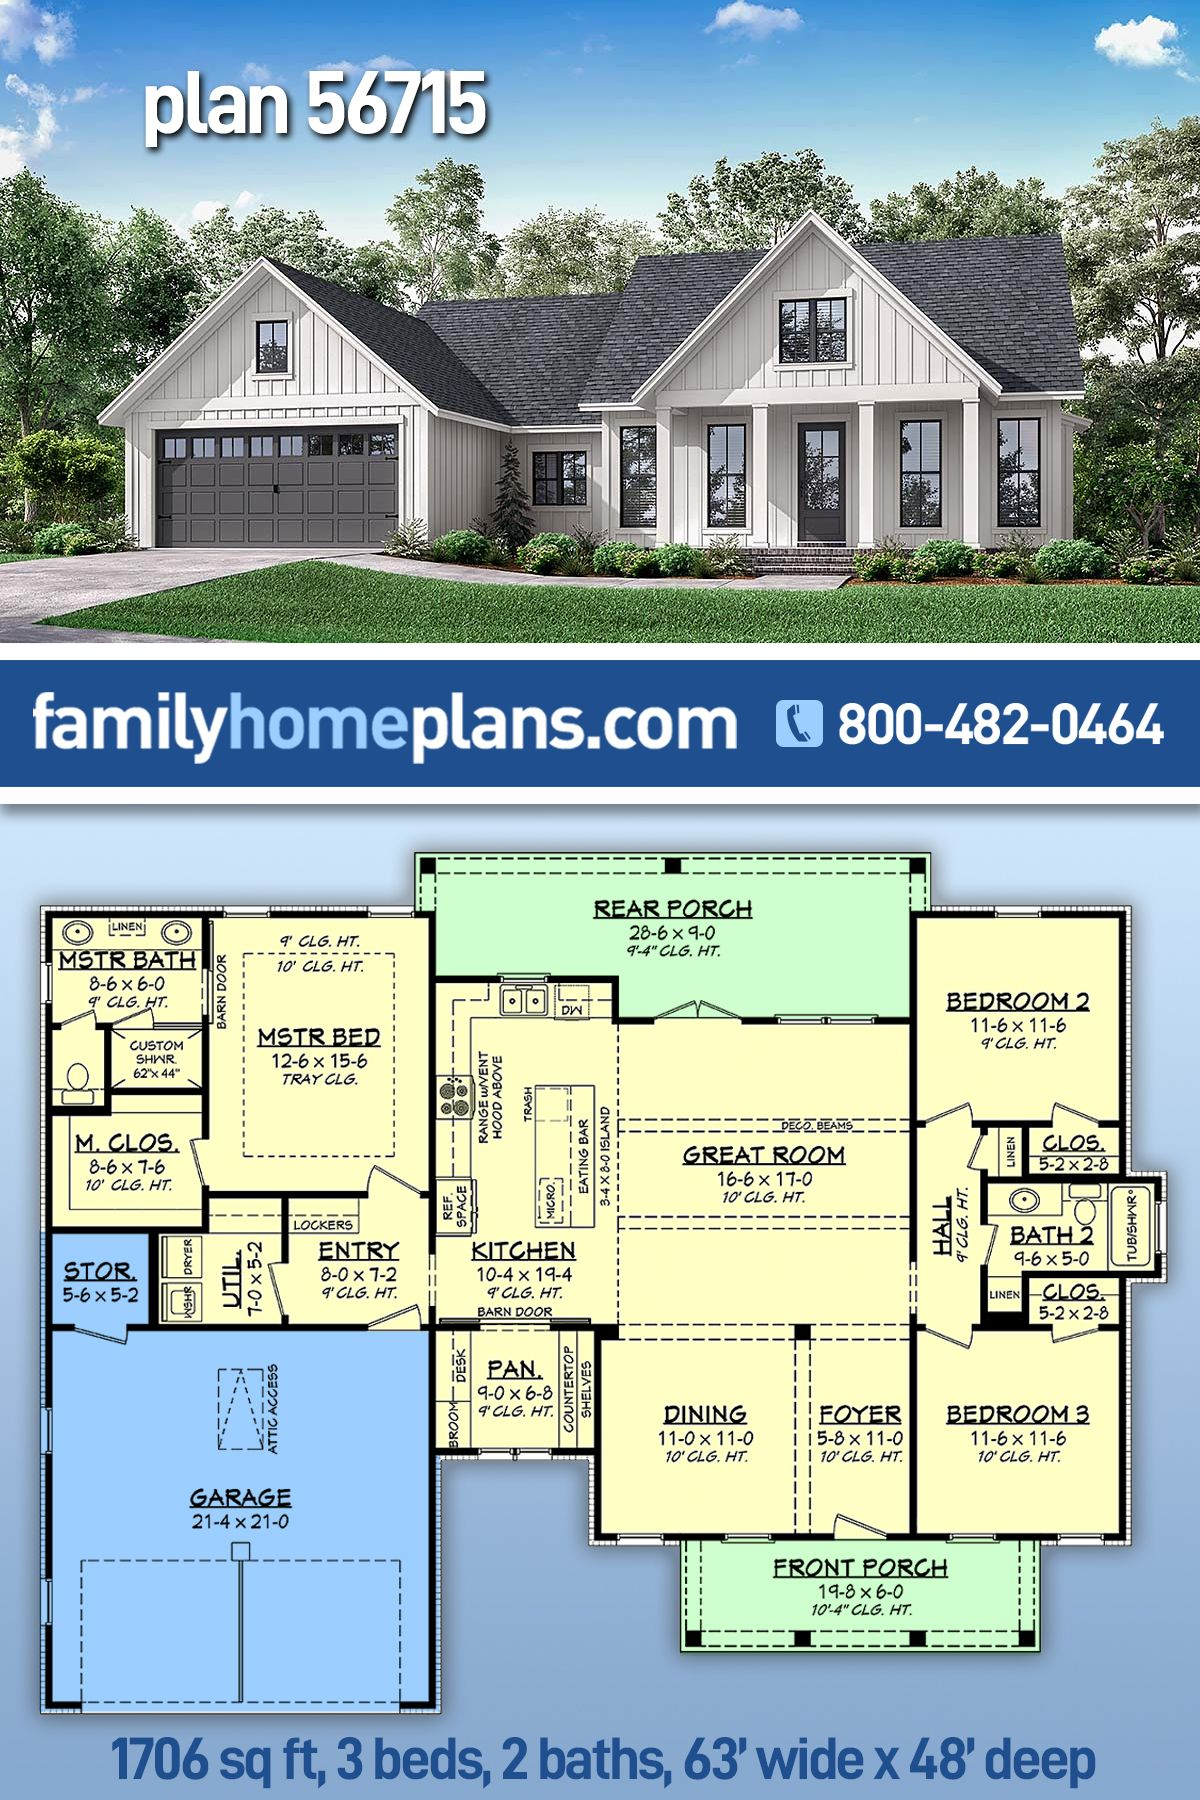 Traditional Style House Plan 56715 With 3 Bed 2 Bath 2 Car Garage In 2021 Barn House Plans House Plans Cottage Style House Plans